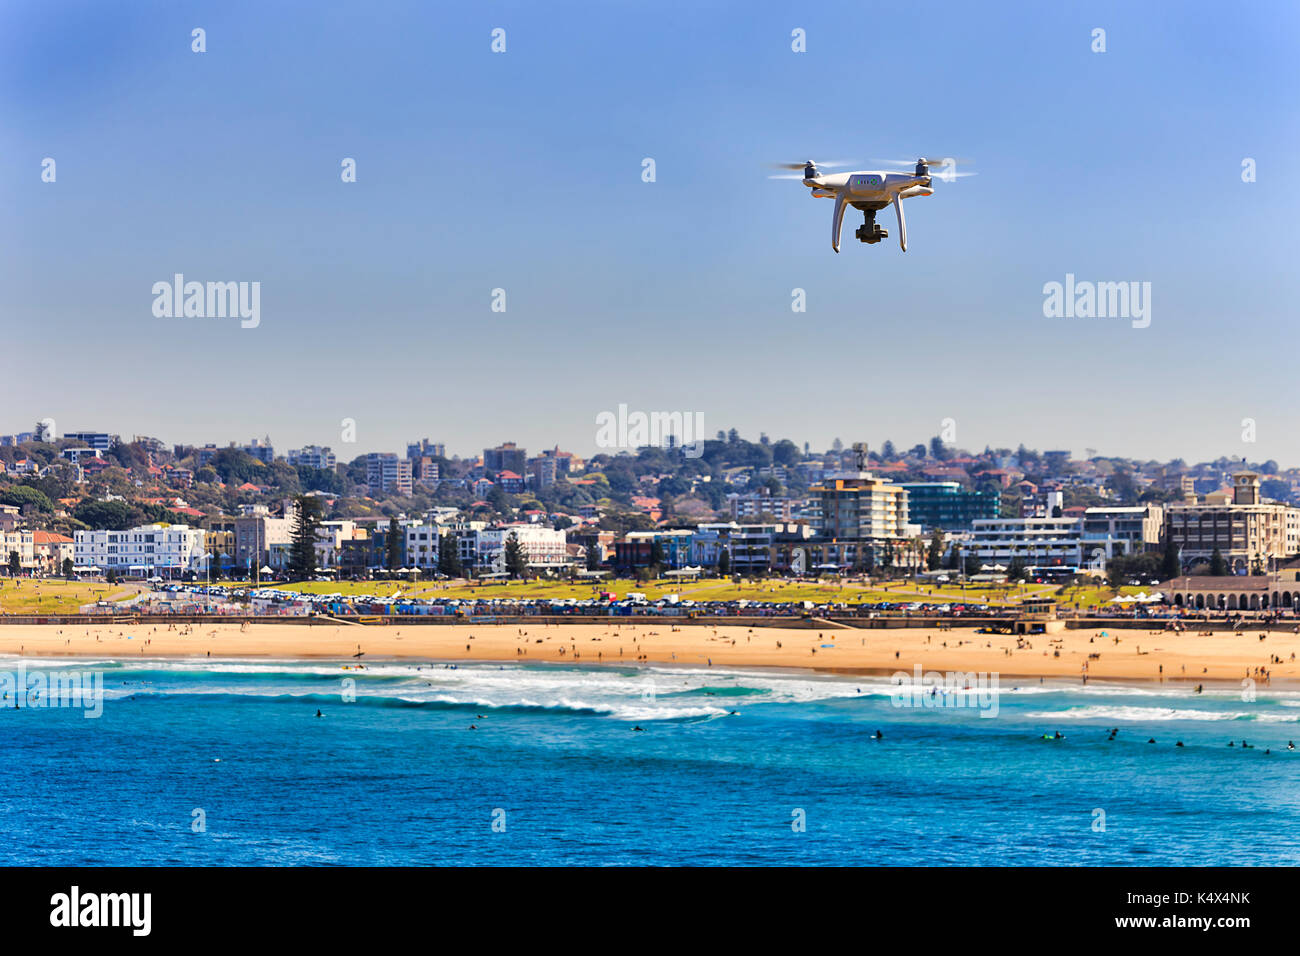 Flying quadrocopter over sand line of famous Australian Bondi beach in Sydney. Active people swimming, surfing and relaxing in iconic tourist destinat - Stock Image